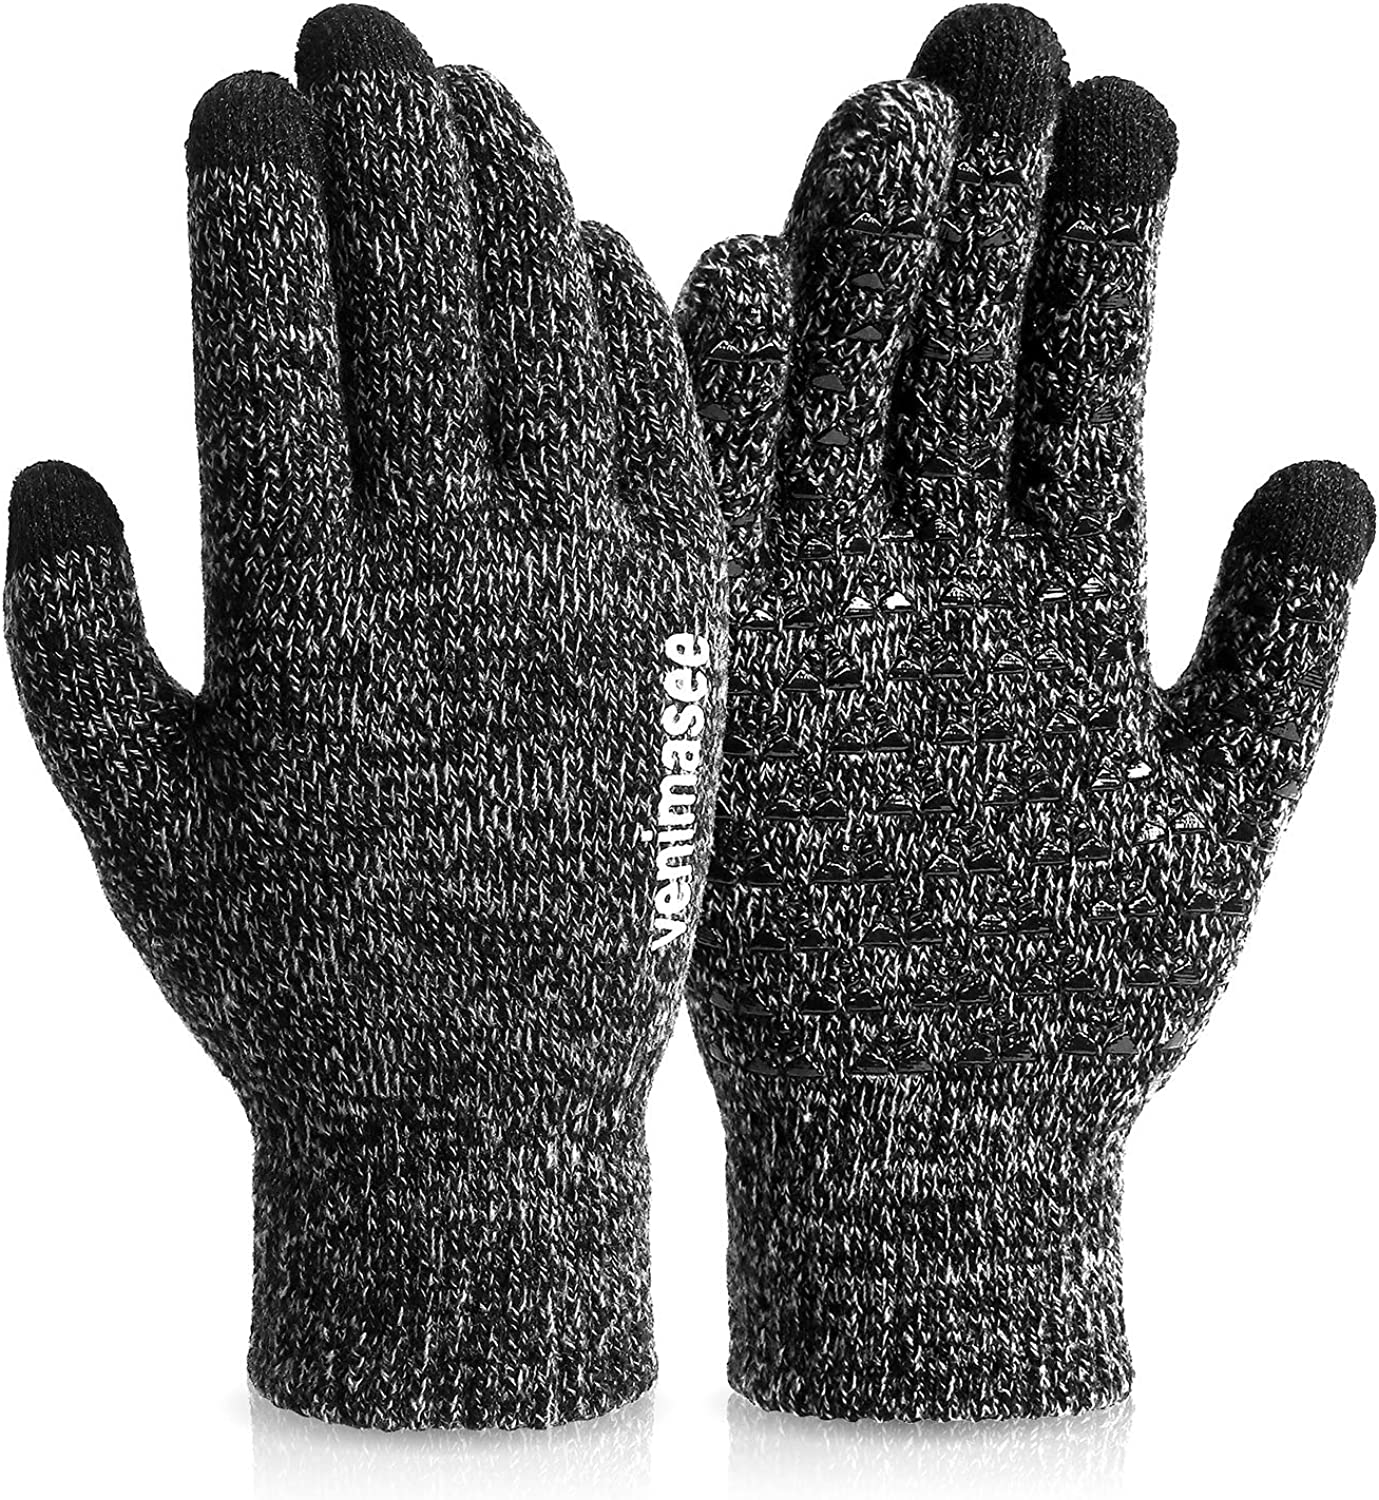 VENI MASEE Winter Gloves Touch Screen Warm Knit Gloves WAS £8.99 NOW £4.50 w/code UH36RQ9X @ Amazon